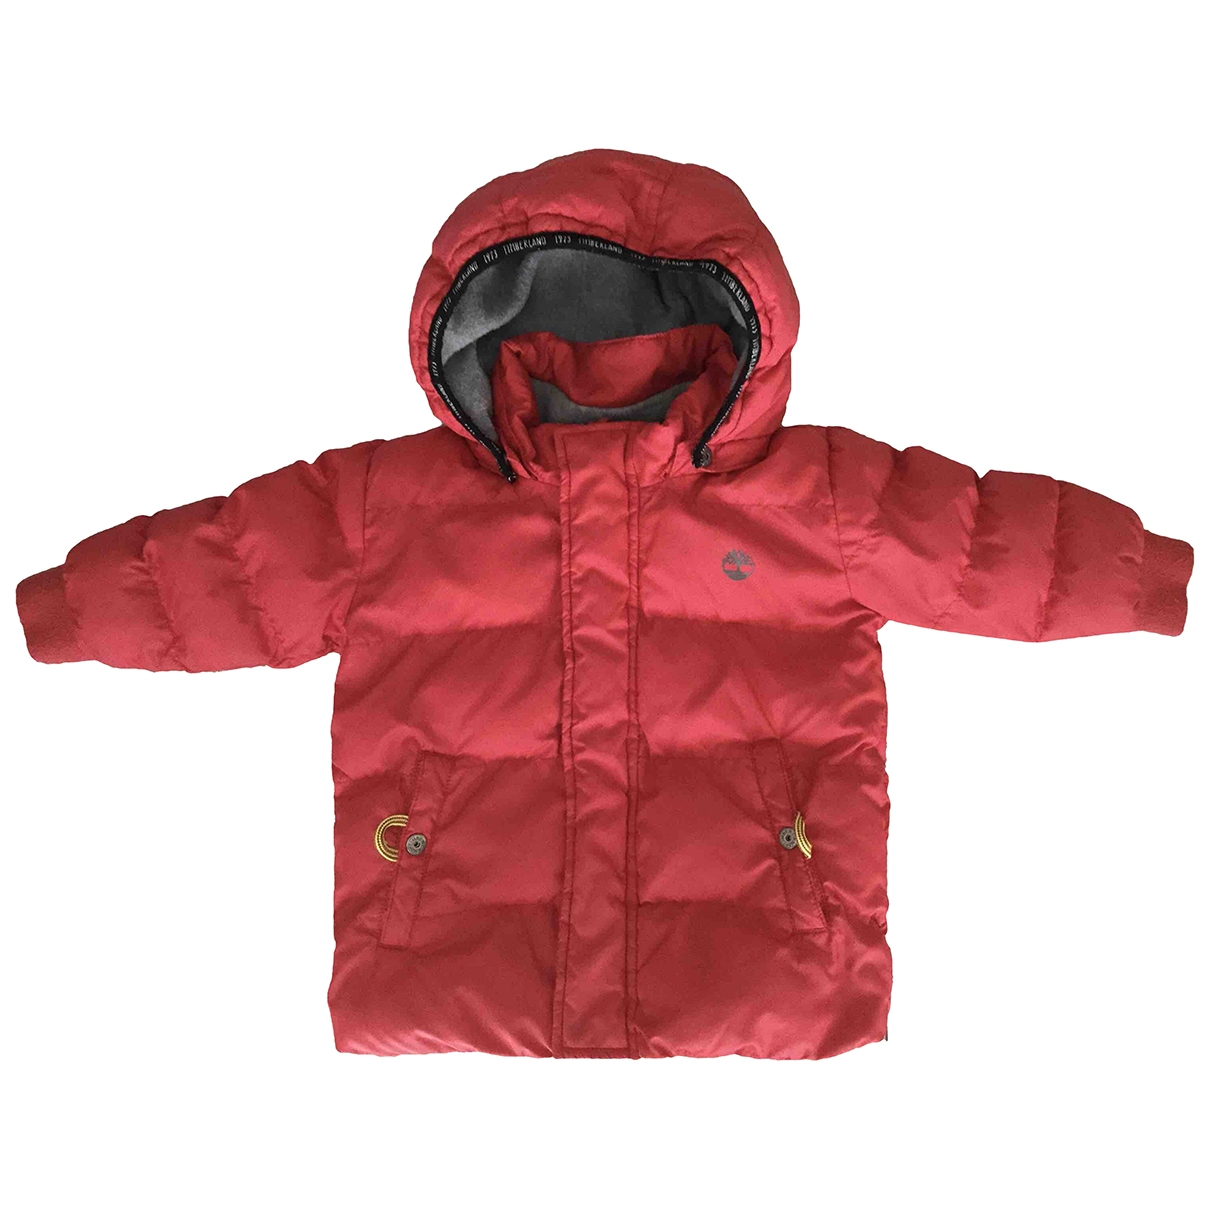 Timberland \N Red jacket & coat for Kids 18 months - up to 81cm FR